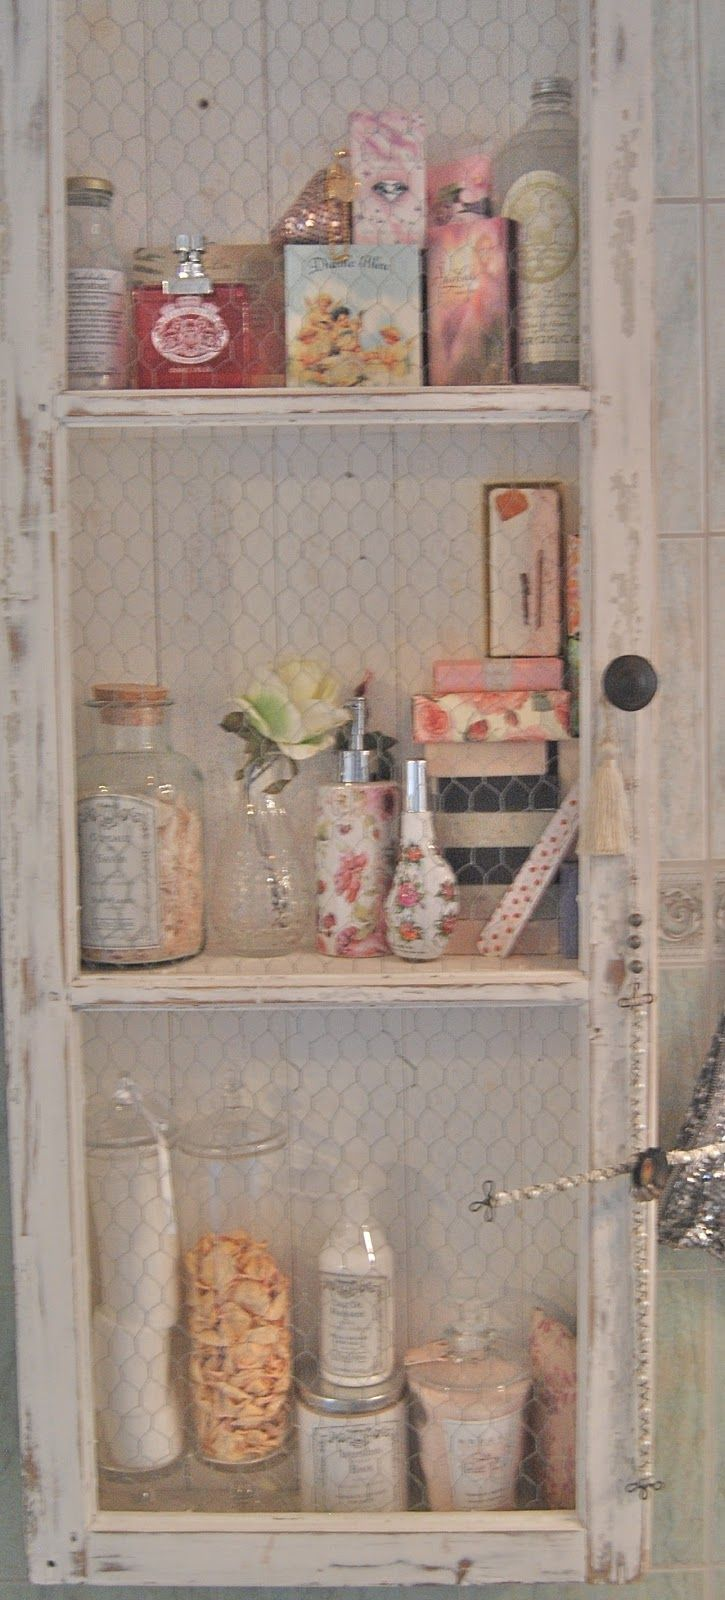 #chippypaint and chicken wire hold items needed for the bathroom in a guesthouse